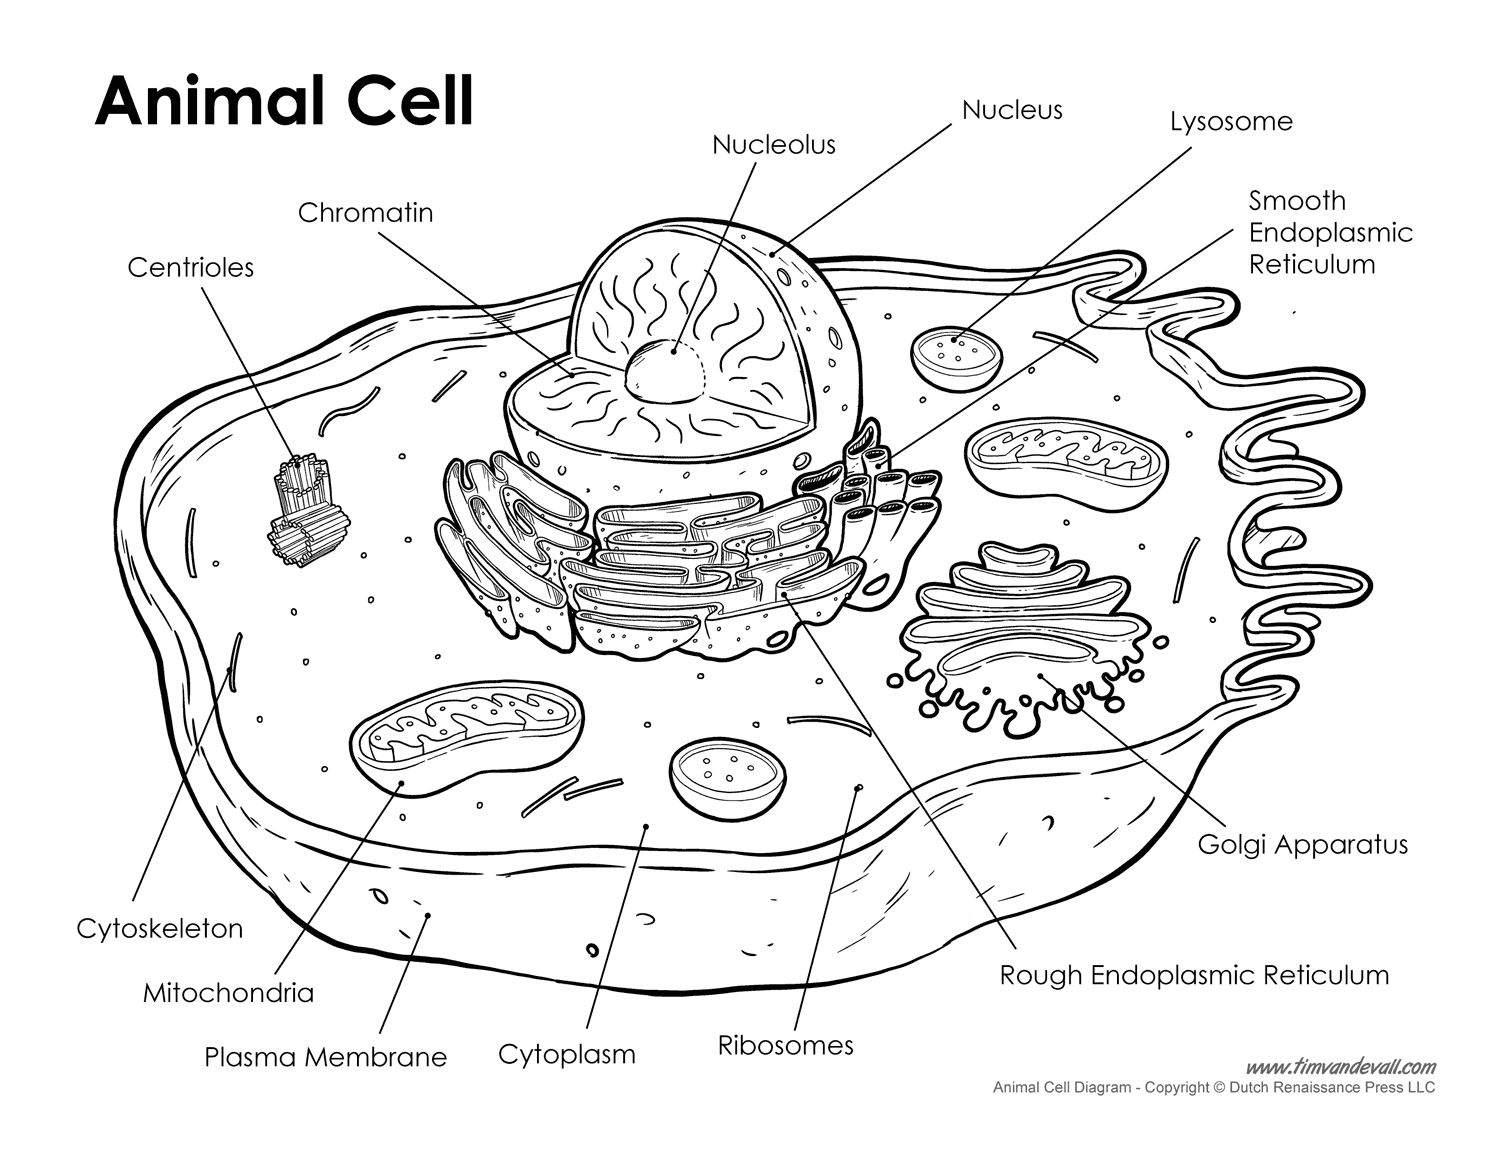 Animal Cell Sketch Animal Cell Drawing Labeled Drawing Sketch